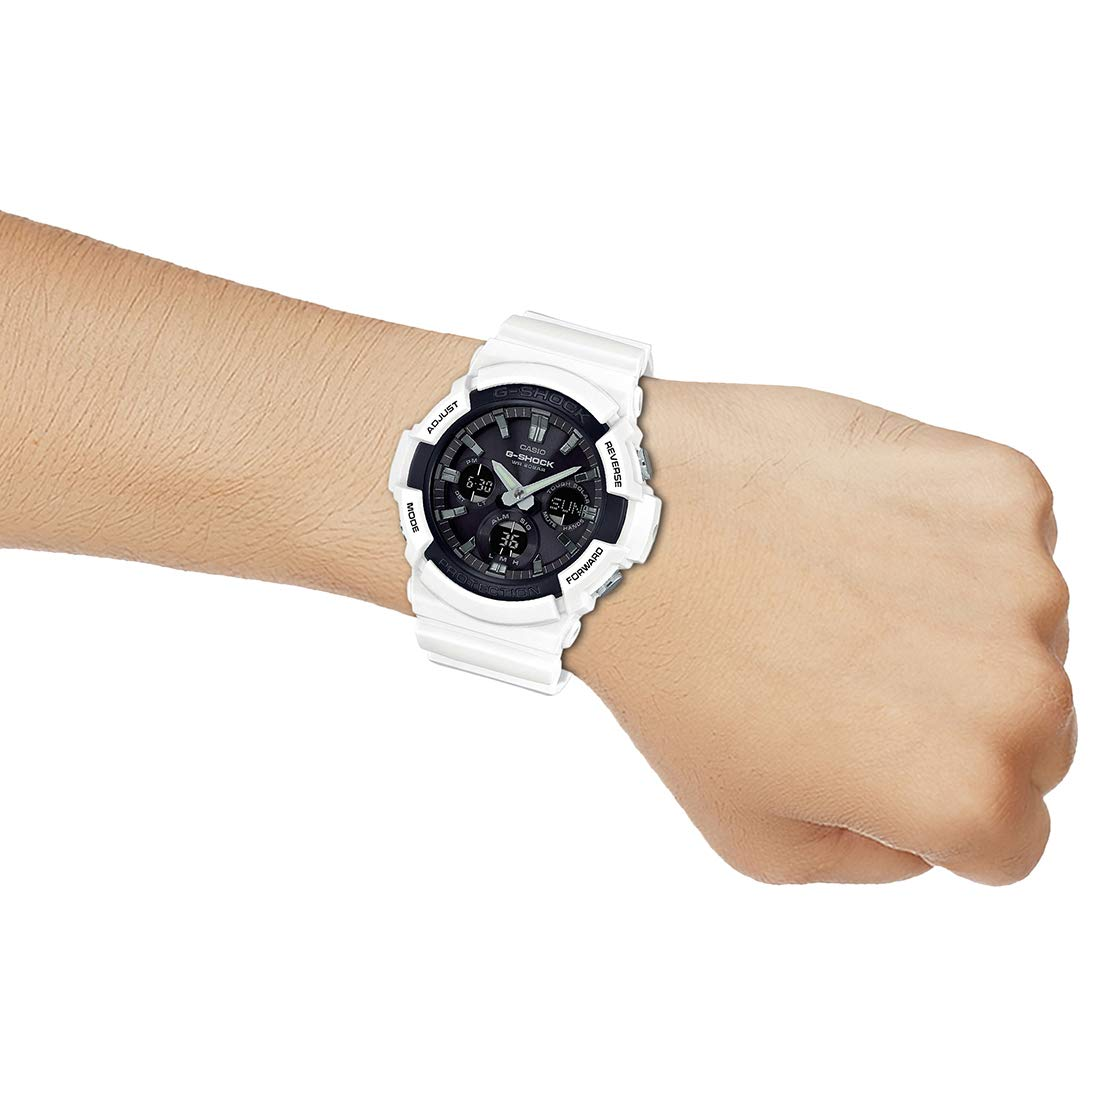 63be5f71d95a Buy Casio G-Shock Analog-Digital Black Dial Men s Watch - GAS-100B-7ADR ( G808) Online at Low Prices in India - Amazon.in